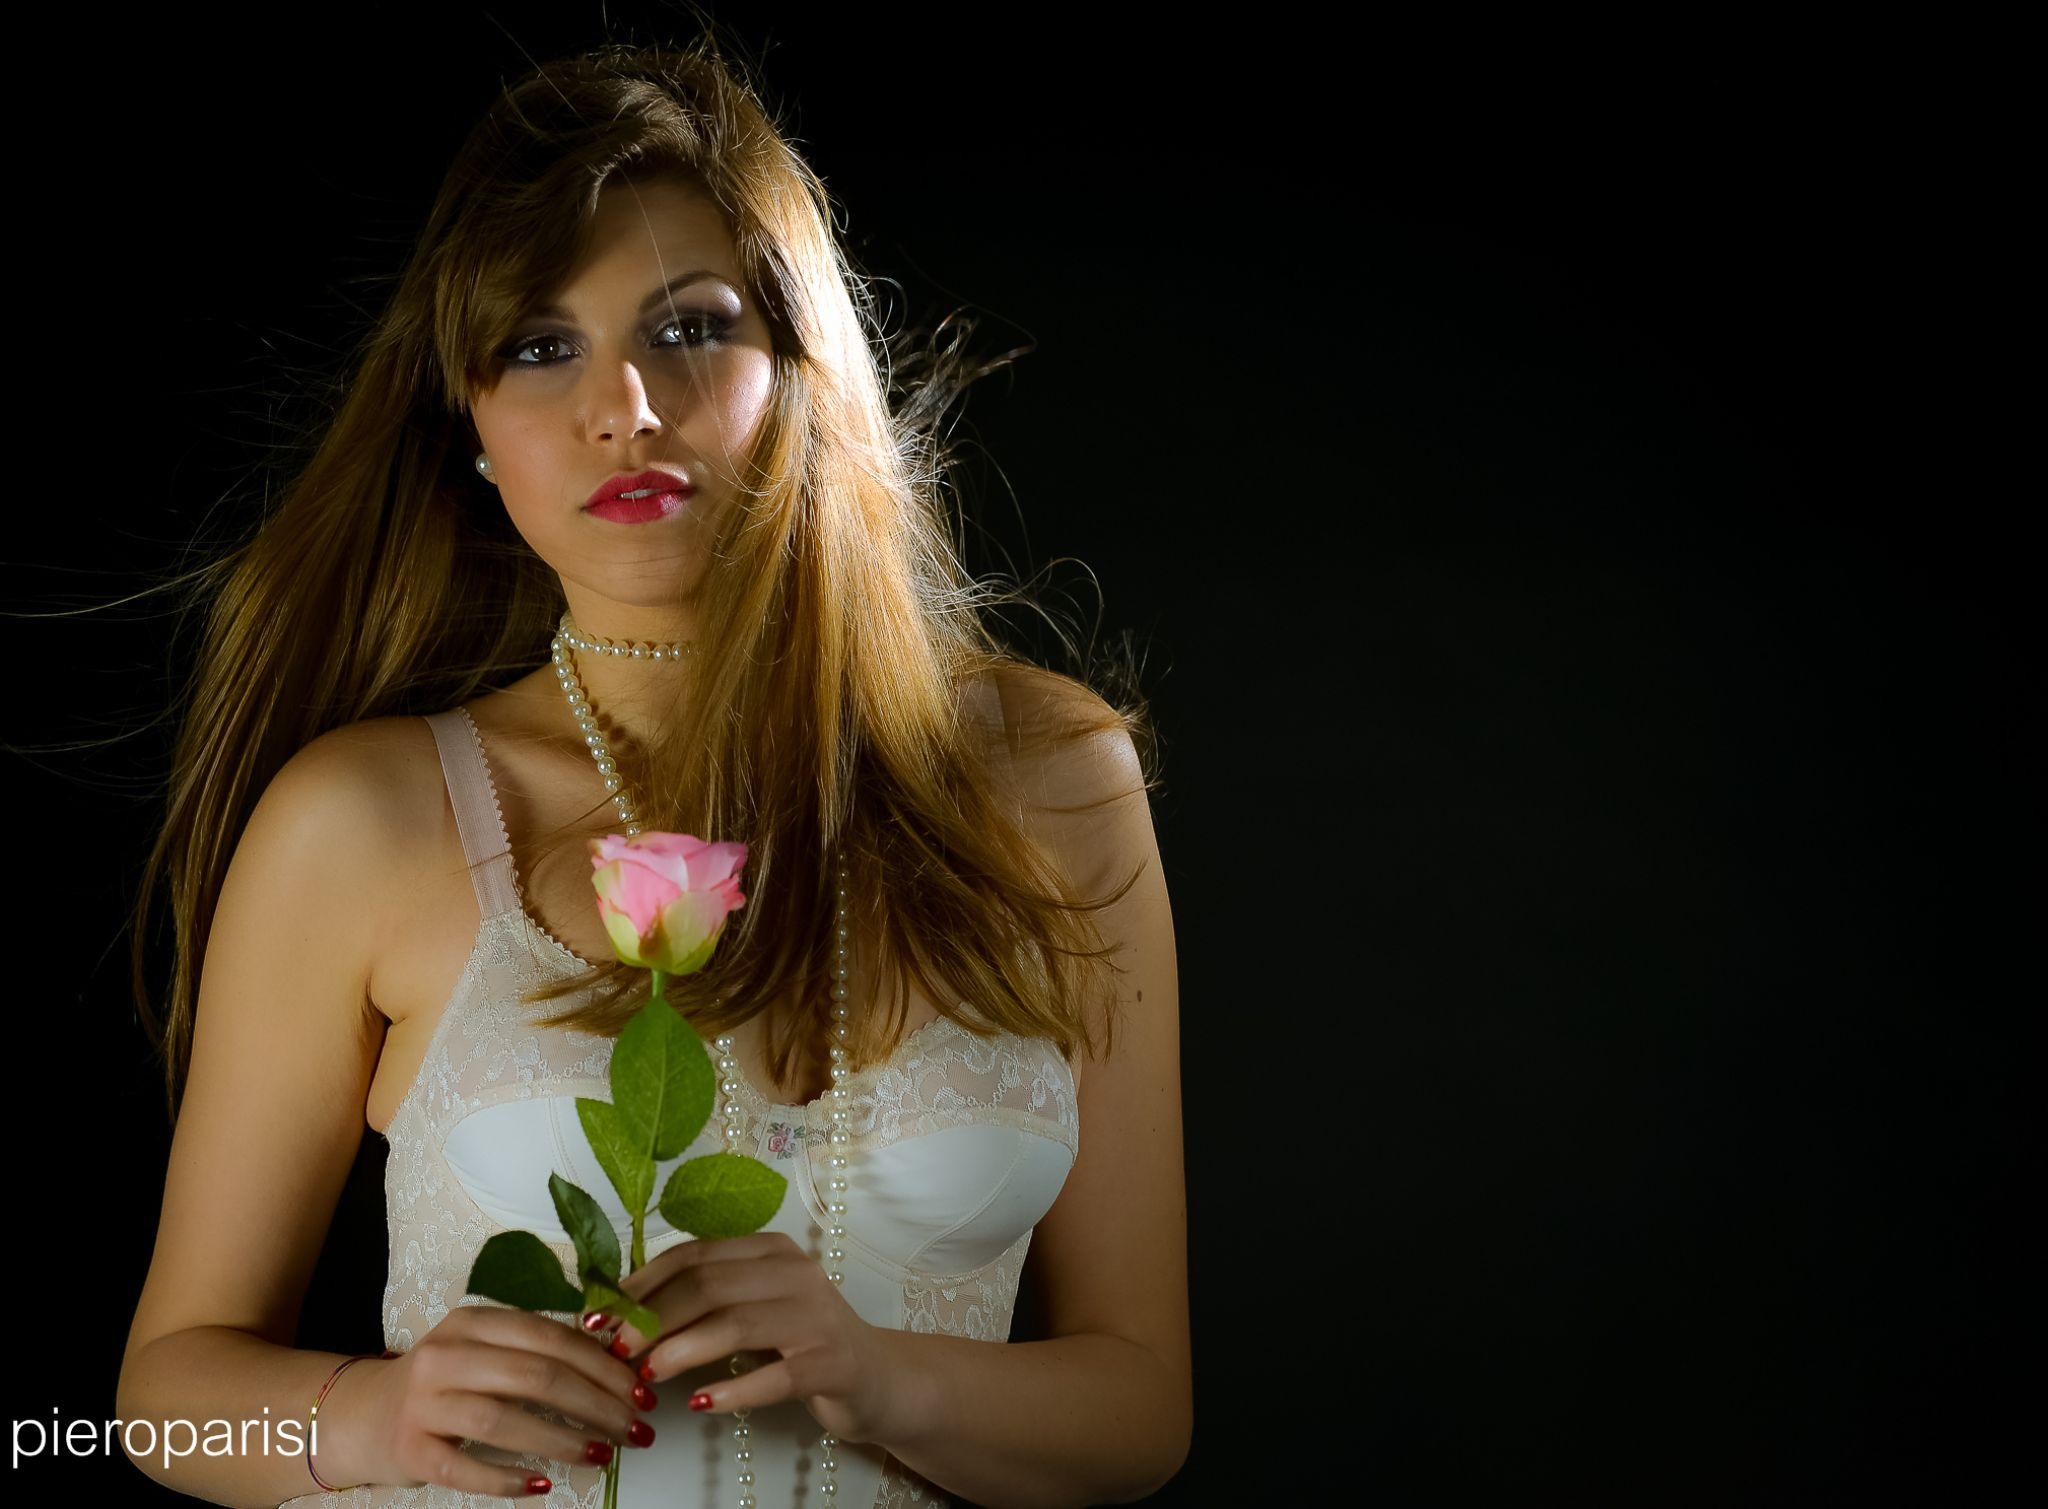 rose by pieroparisi779